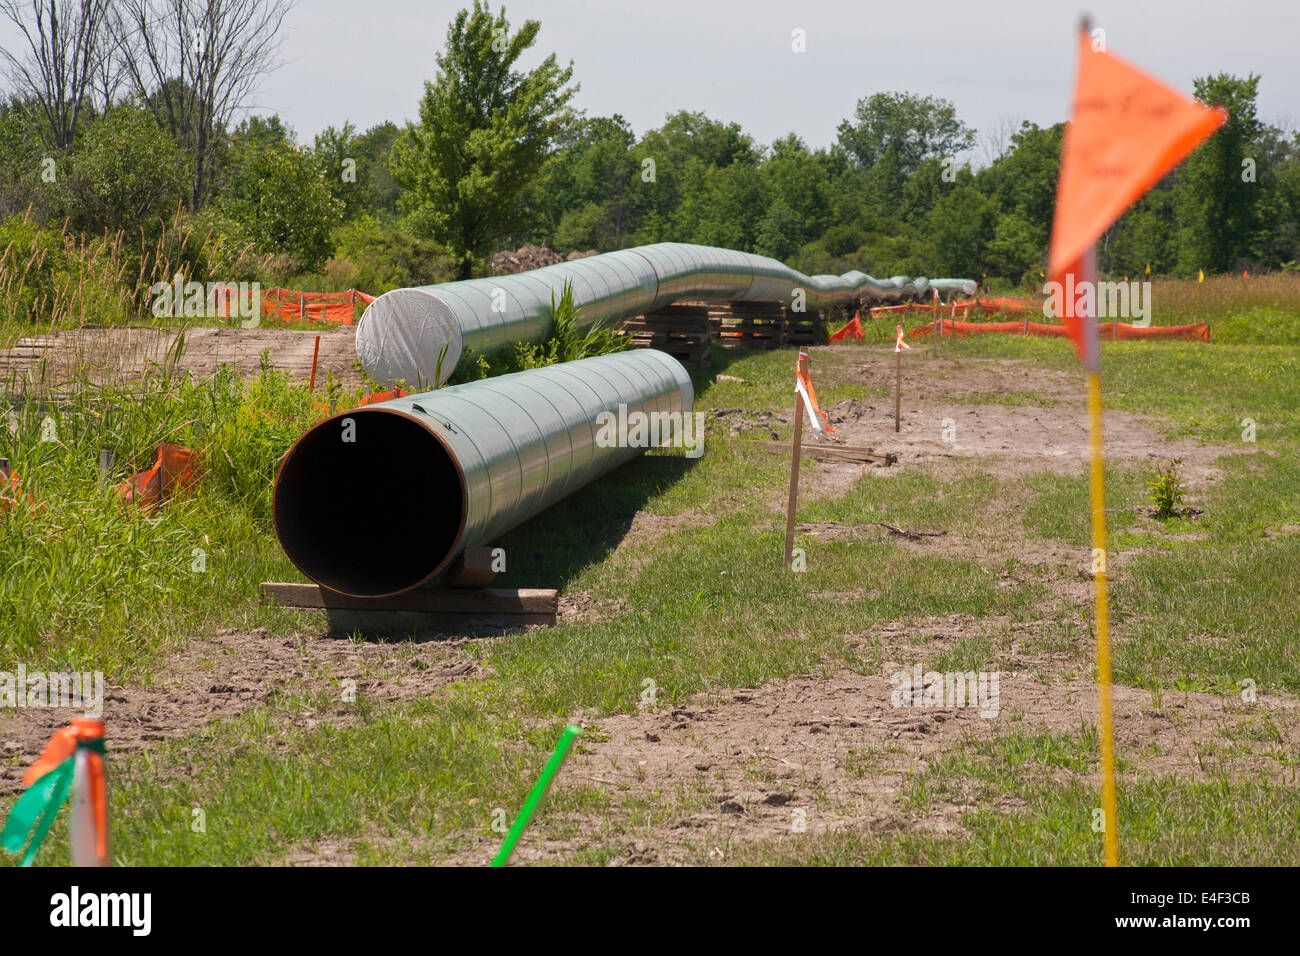 Marysville, Michigan - Construction of a pipeline to carry tar sands oil from Canada. - Stock Image